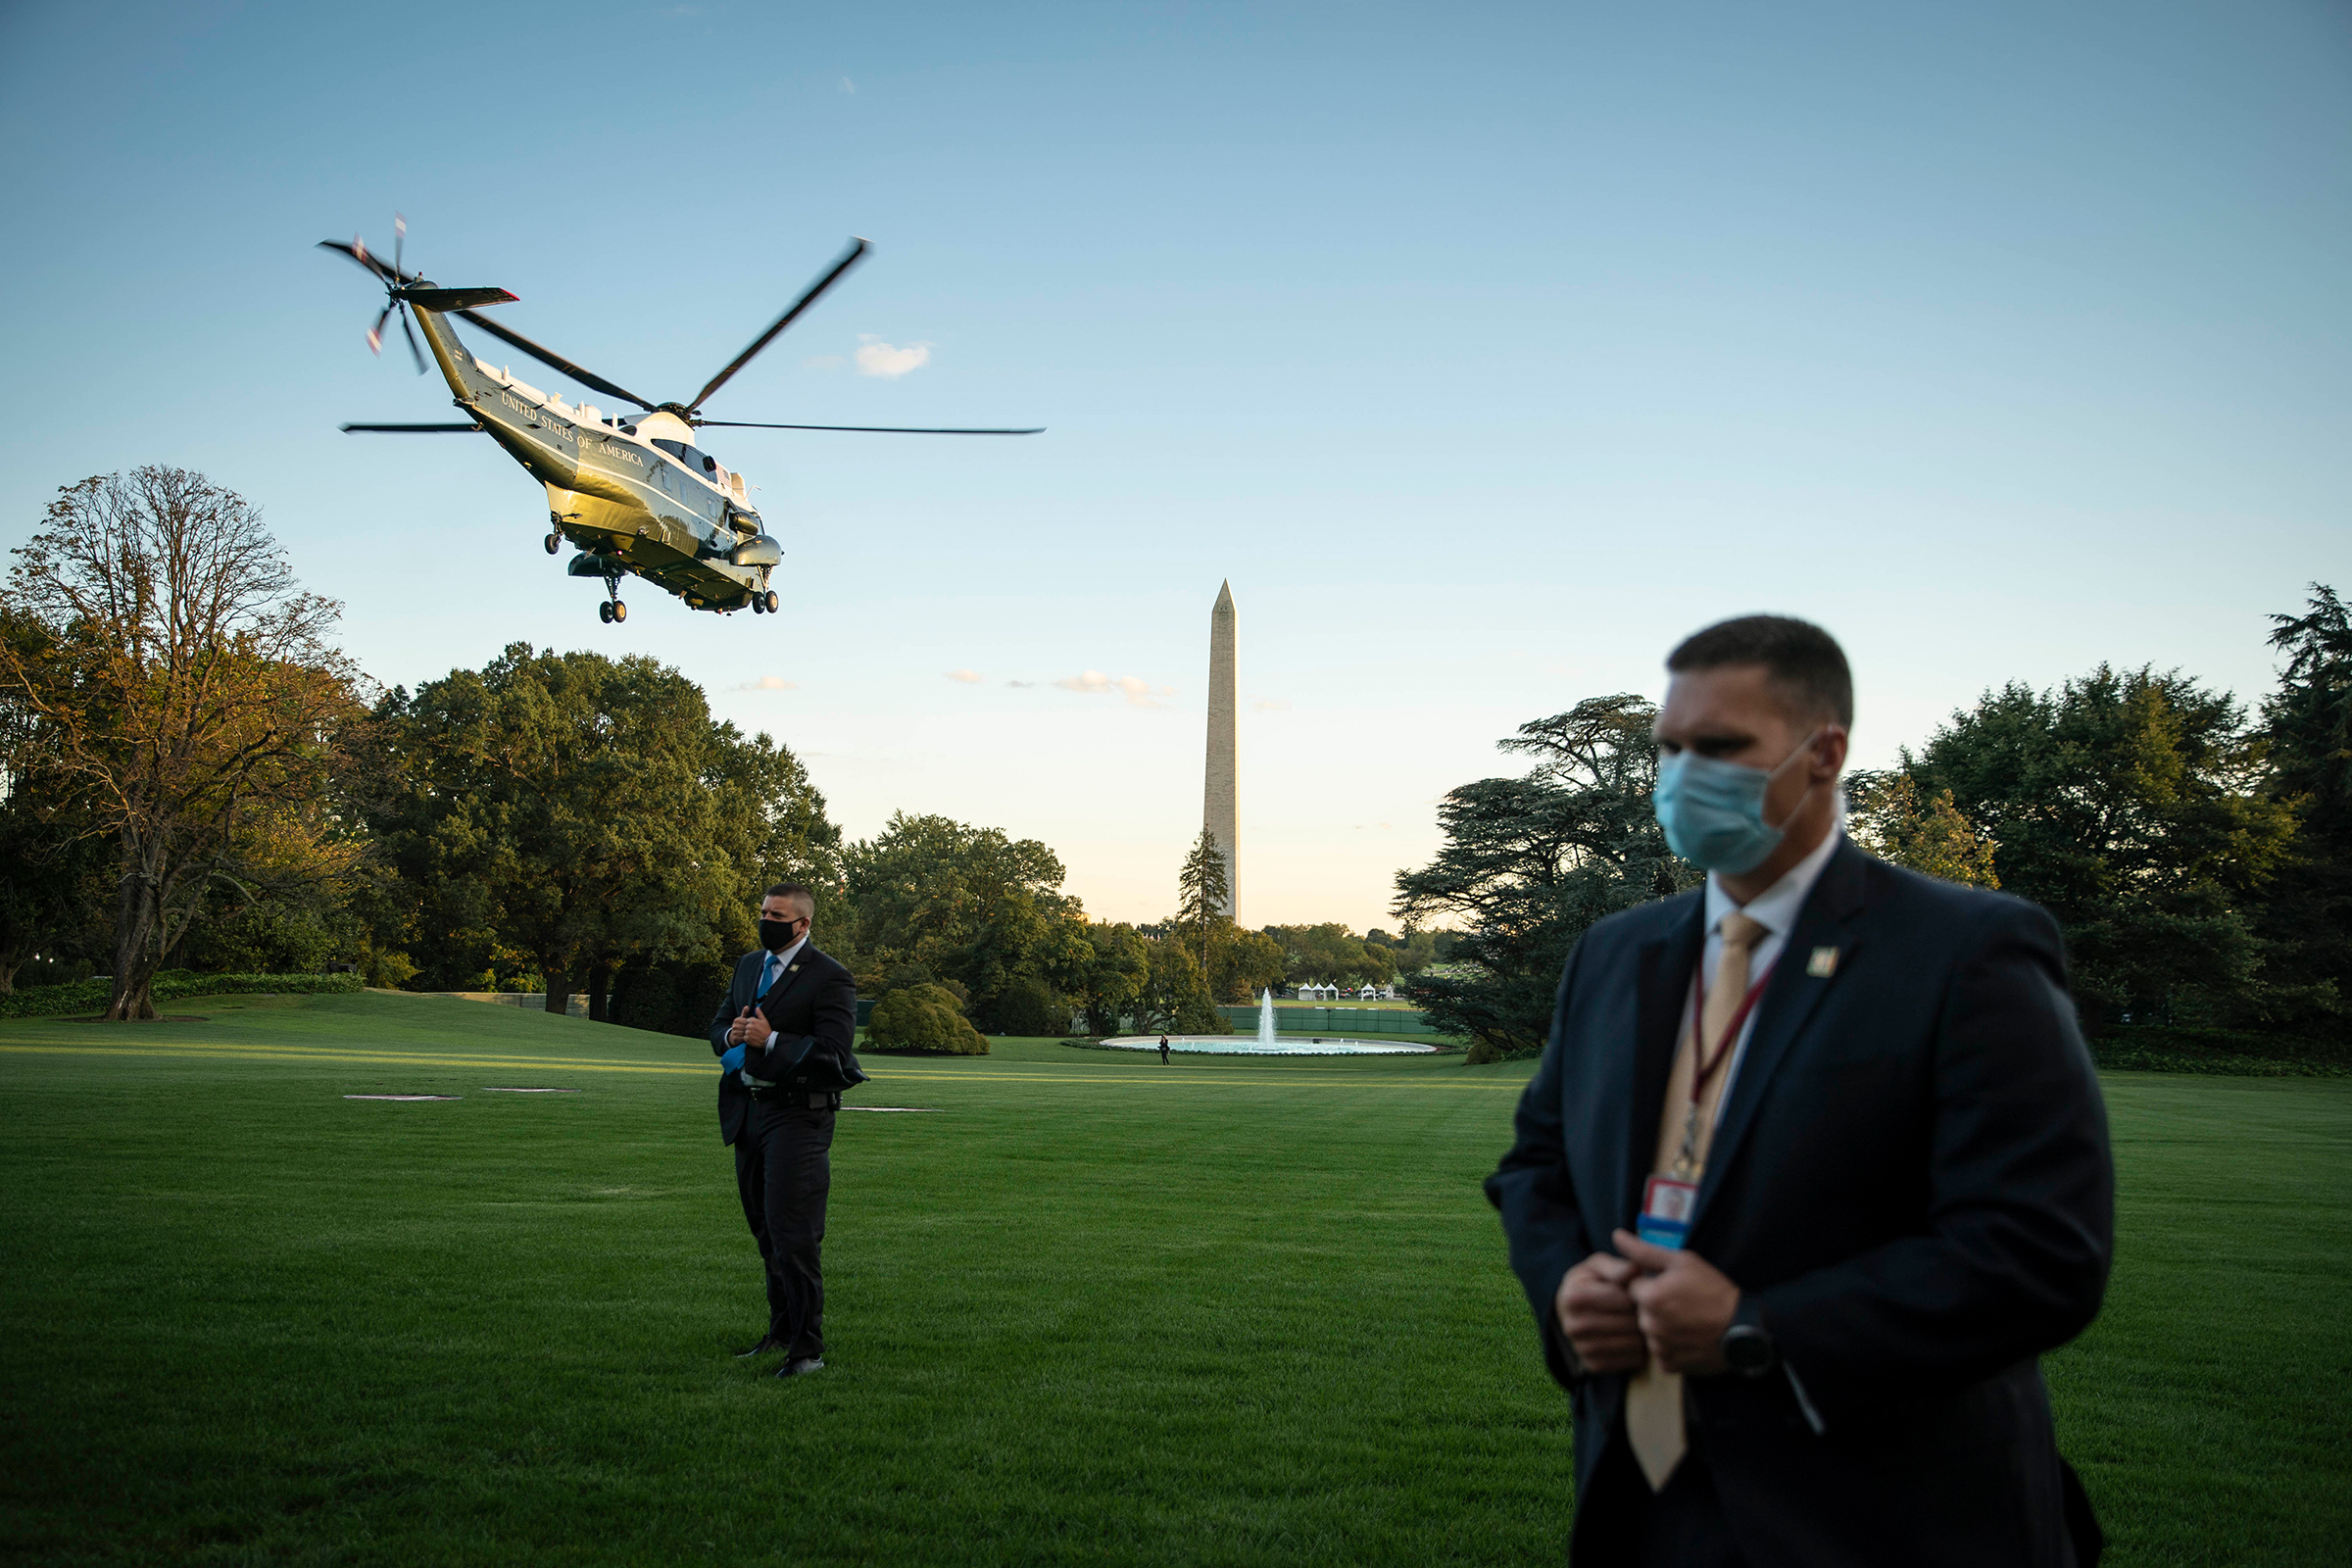 Secret Service agents wearing protective face masks stand by as Marine One, carrying President Trump, departs from the South Lawn of the White House on Oct. 2.